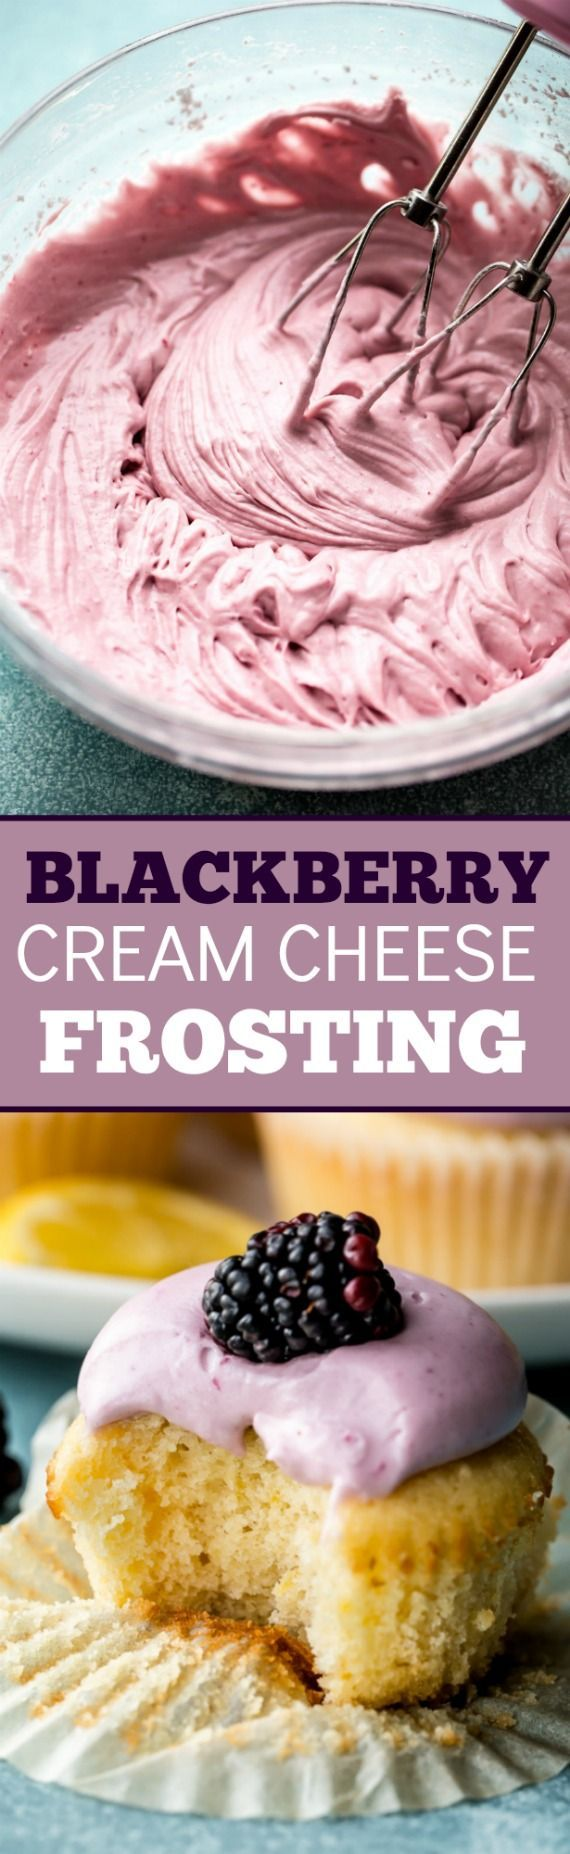 Creamy, silky, and smooth blackberry cream cheese frosting made from blackberry ... Creamy, silky, and smooth blackberry cream cheese frosting made from blackberry ...